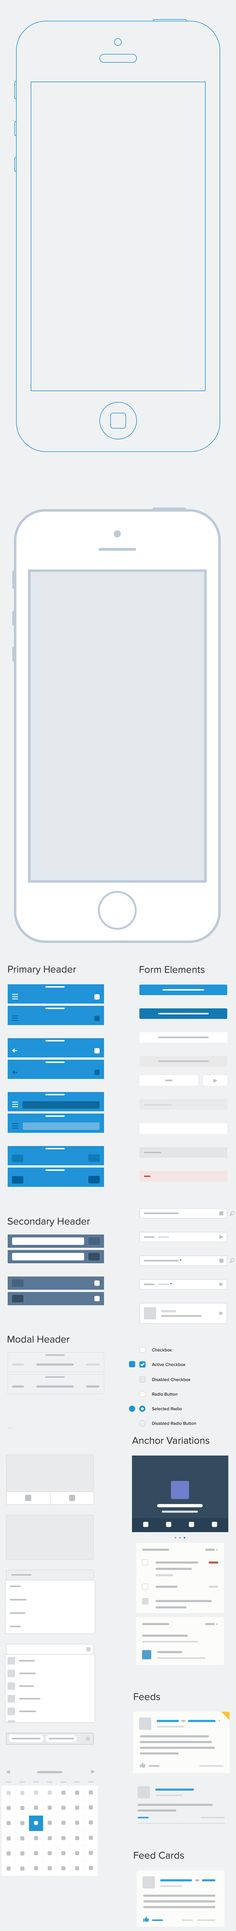 LOVES DATA LOVES ||  Mobile Sketch Wireframe Kit for Prototyping